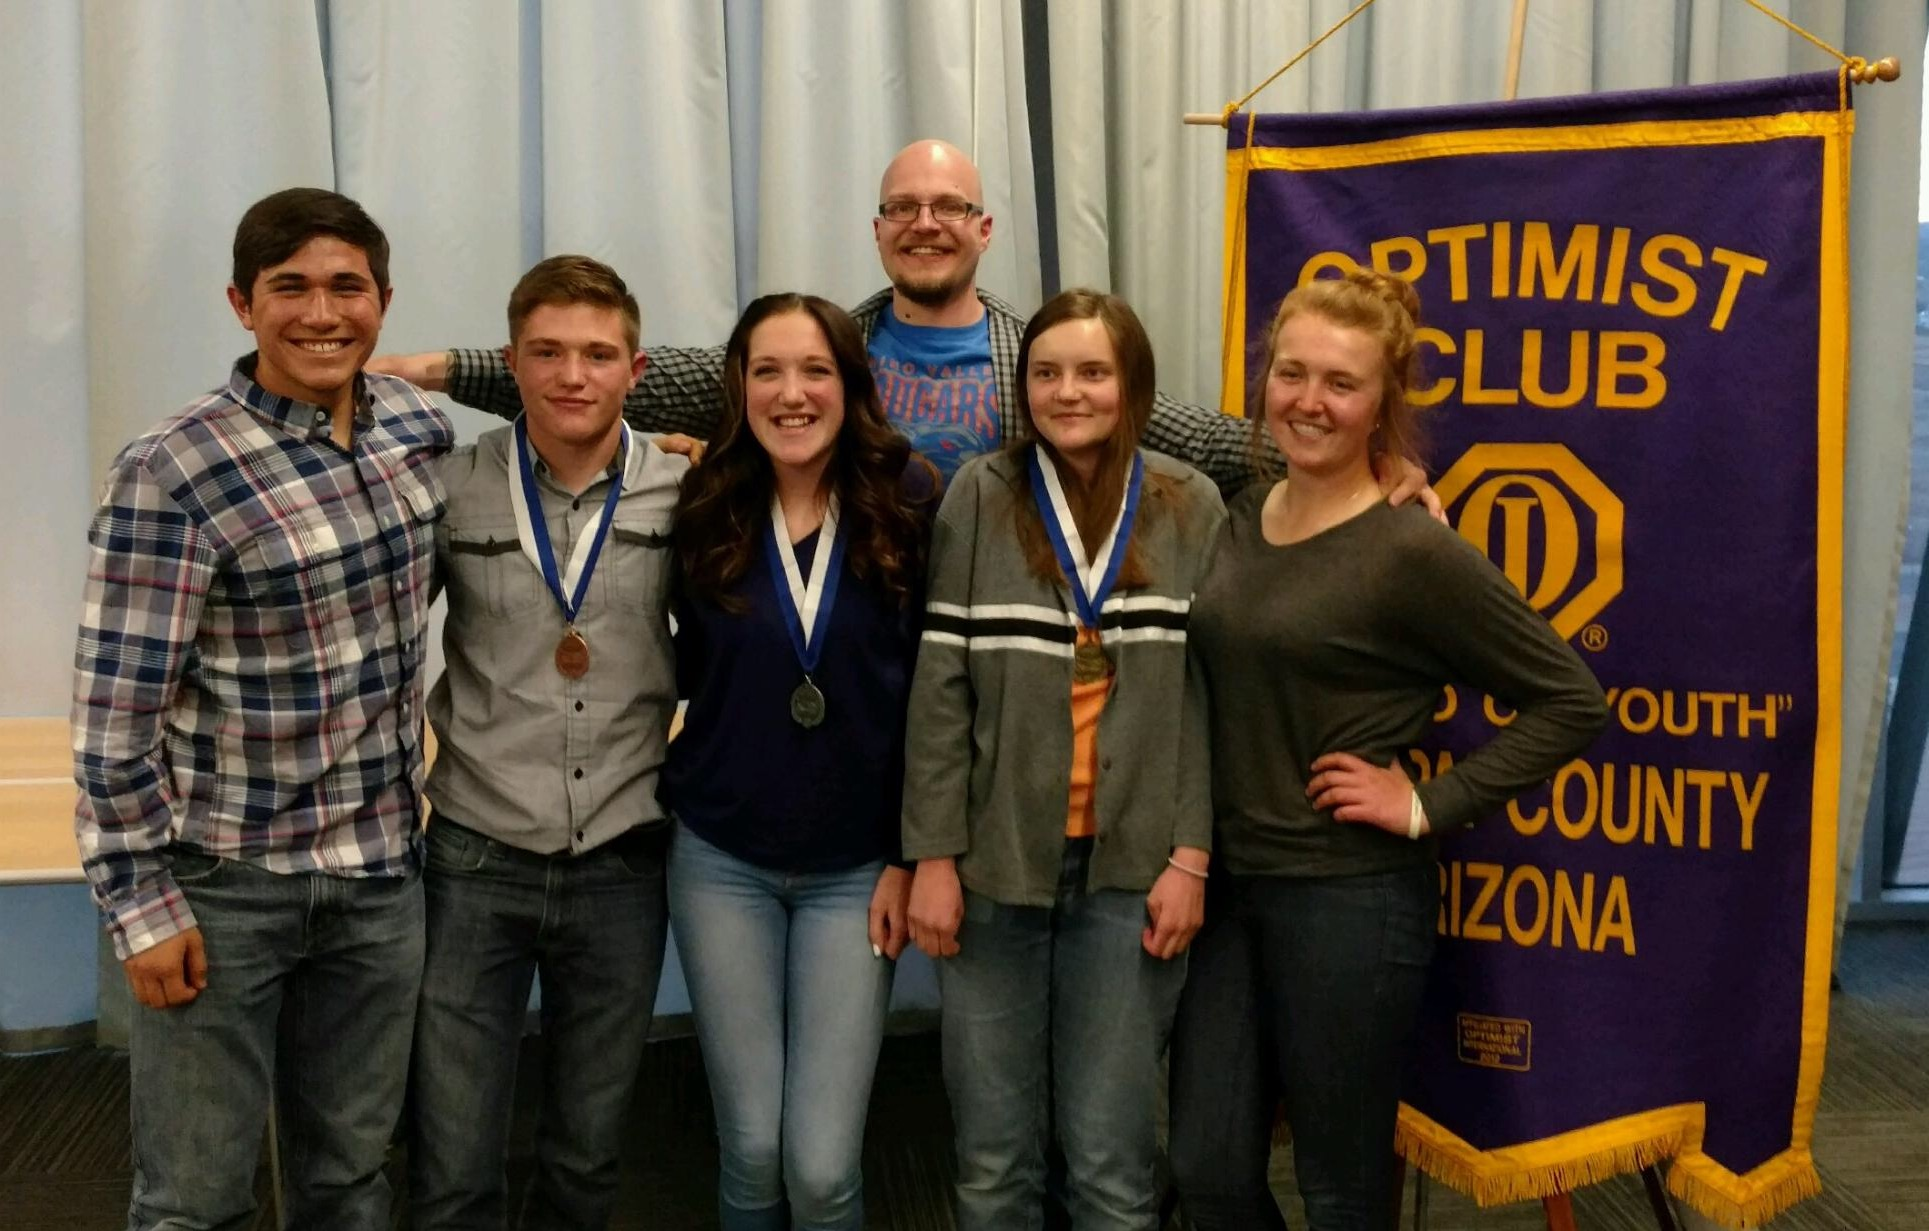 Chino Valley High School students sweep Optimist essay contest | The ...